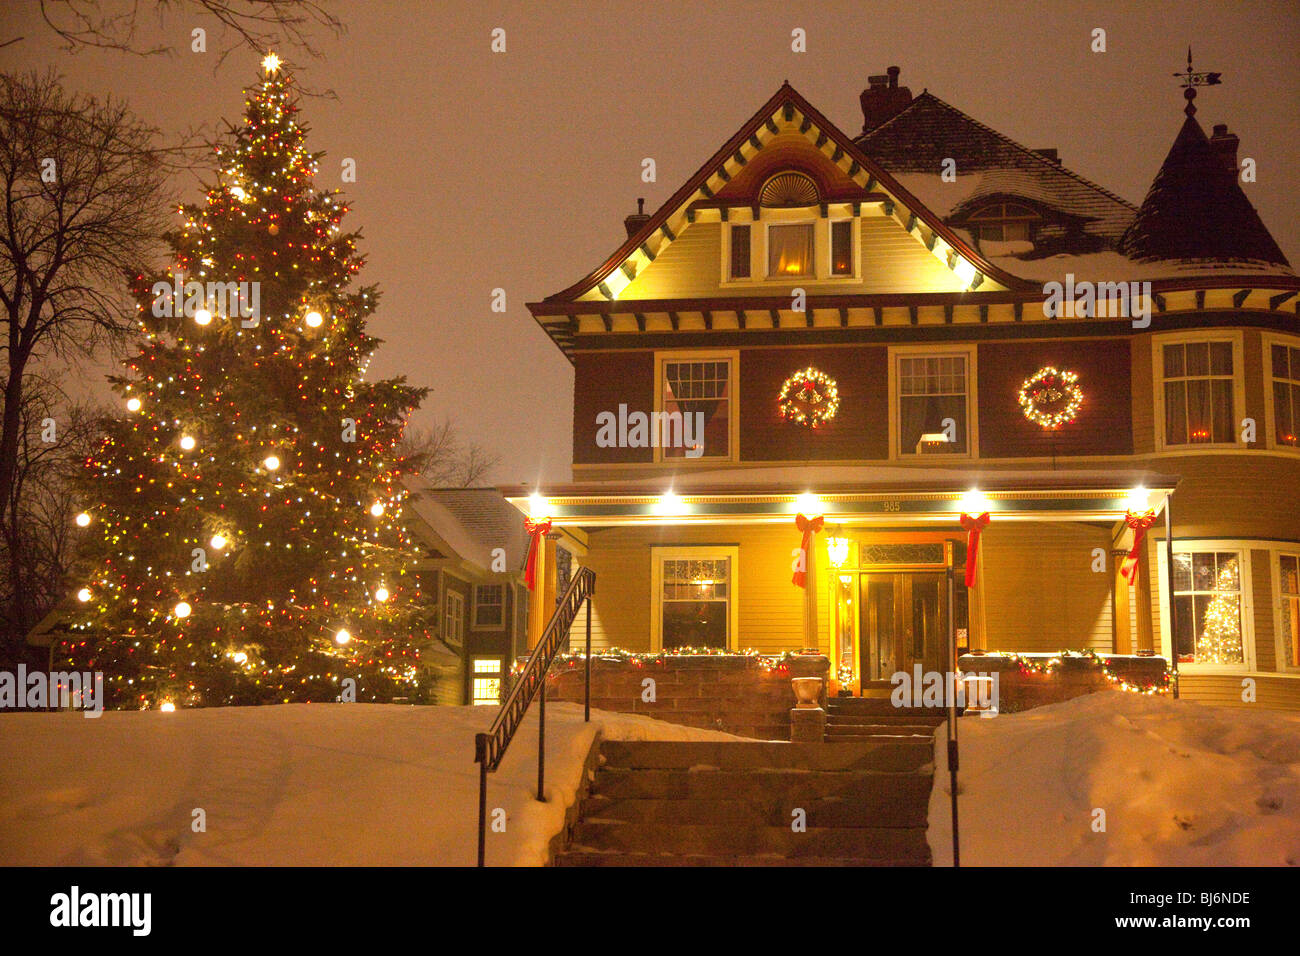 Christmas house outside -  Outside Nighttime Christmas Tree And Decorated House St Paul Minnesota Usa Stock Photo